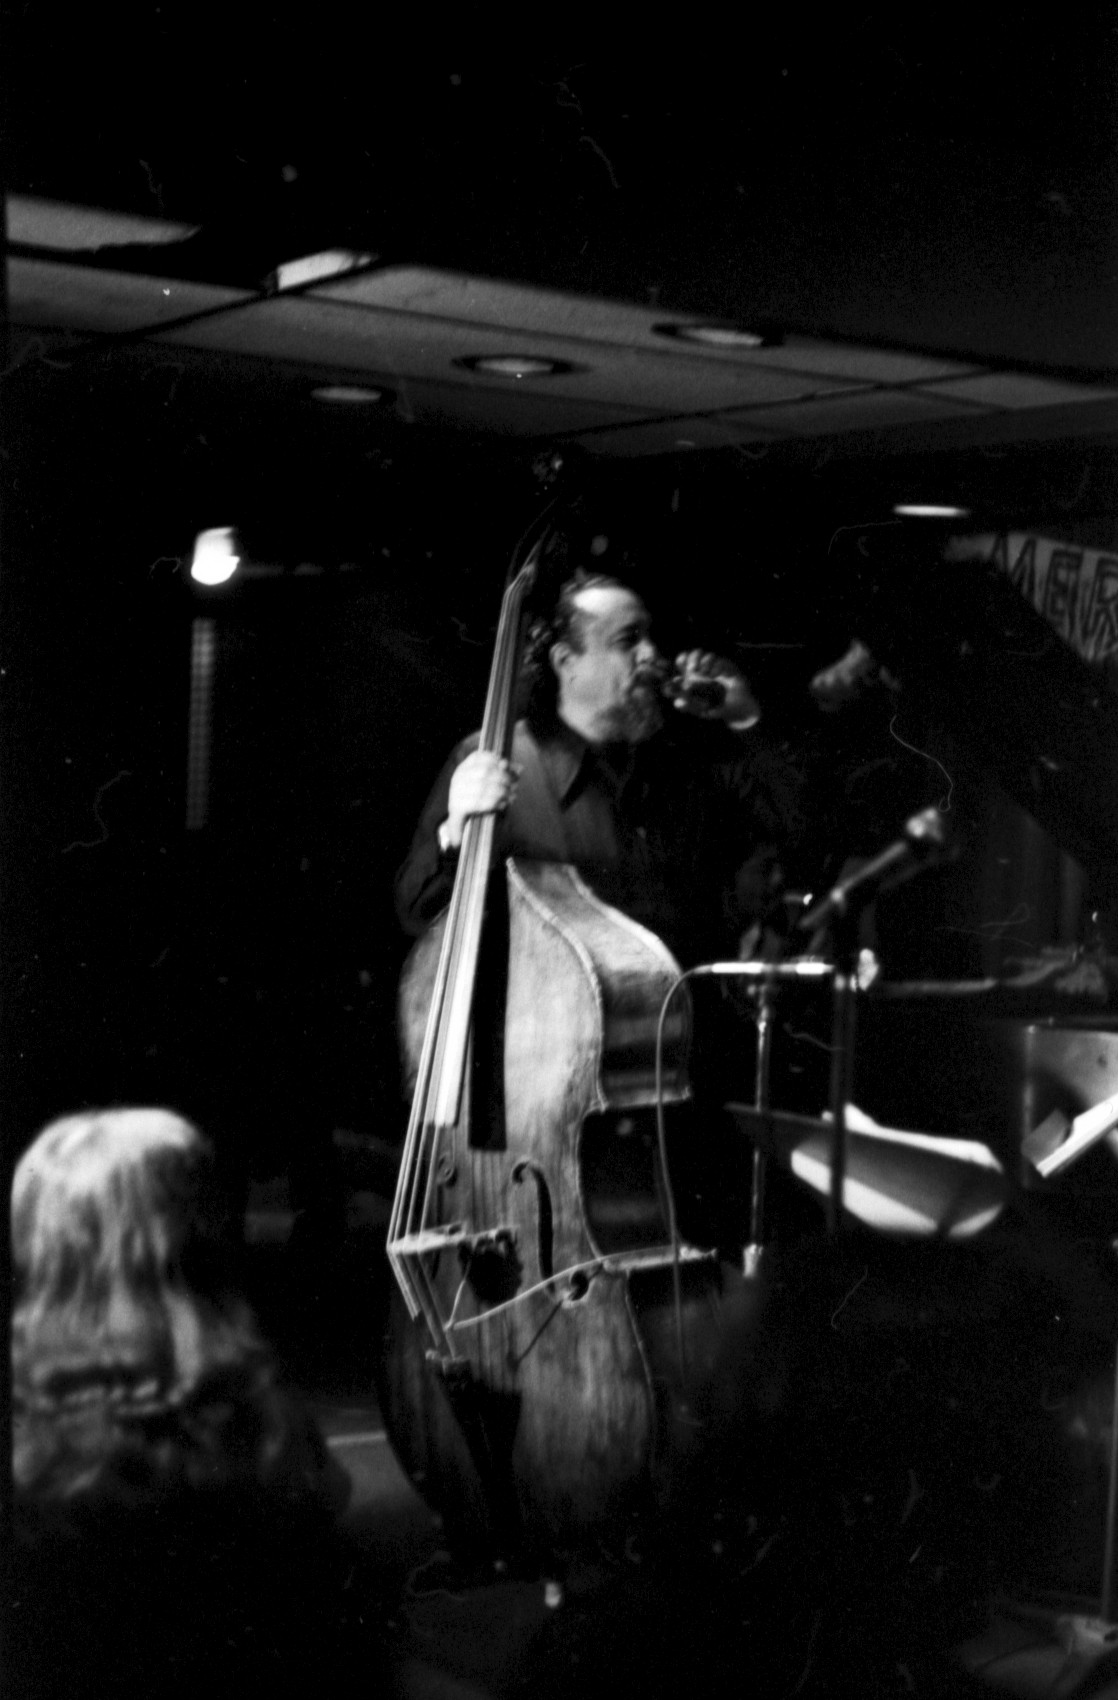 Charles mingus at jazz workshop, 1975